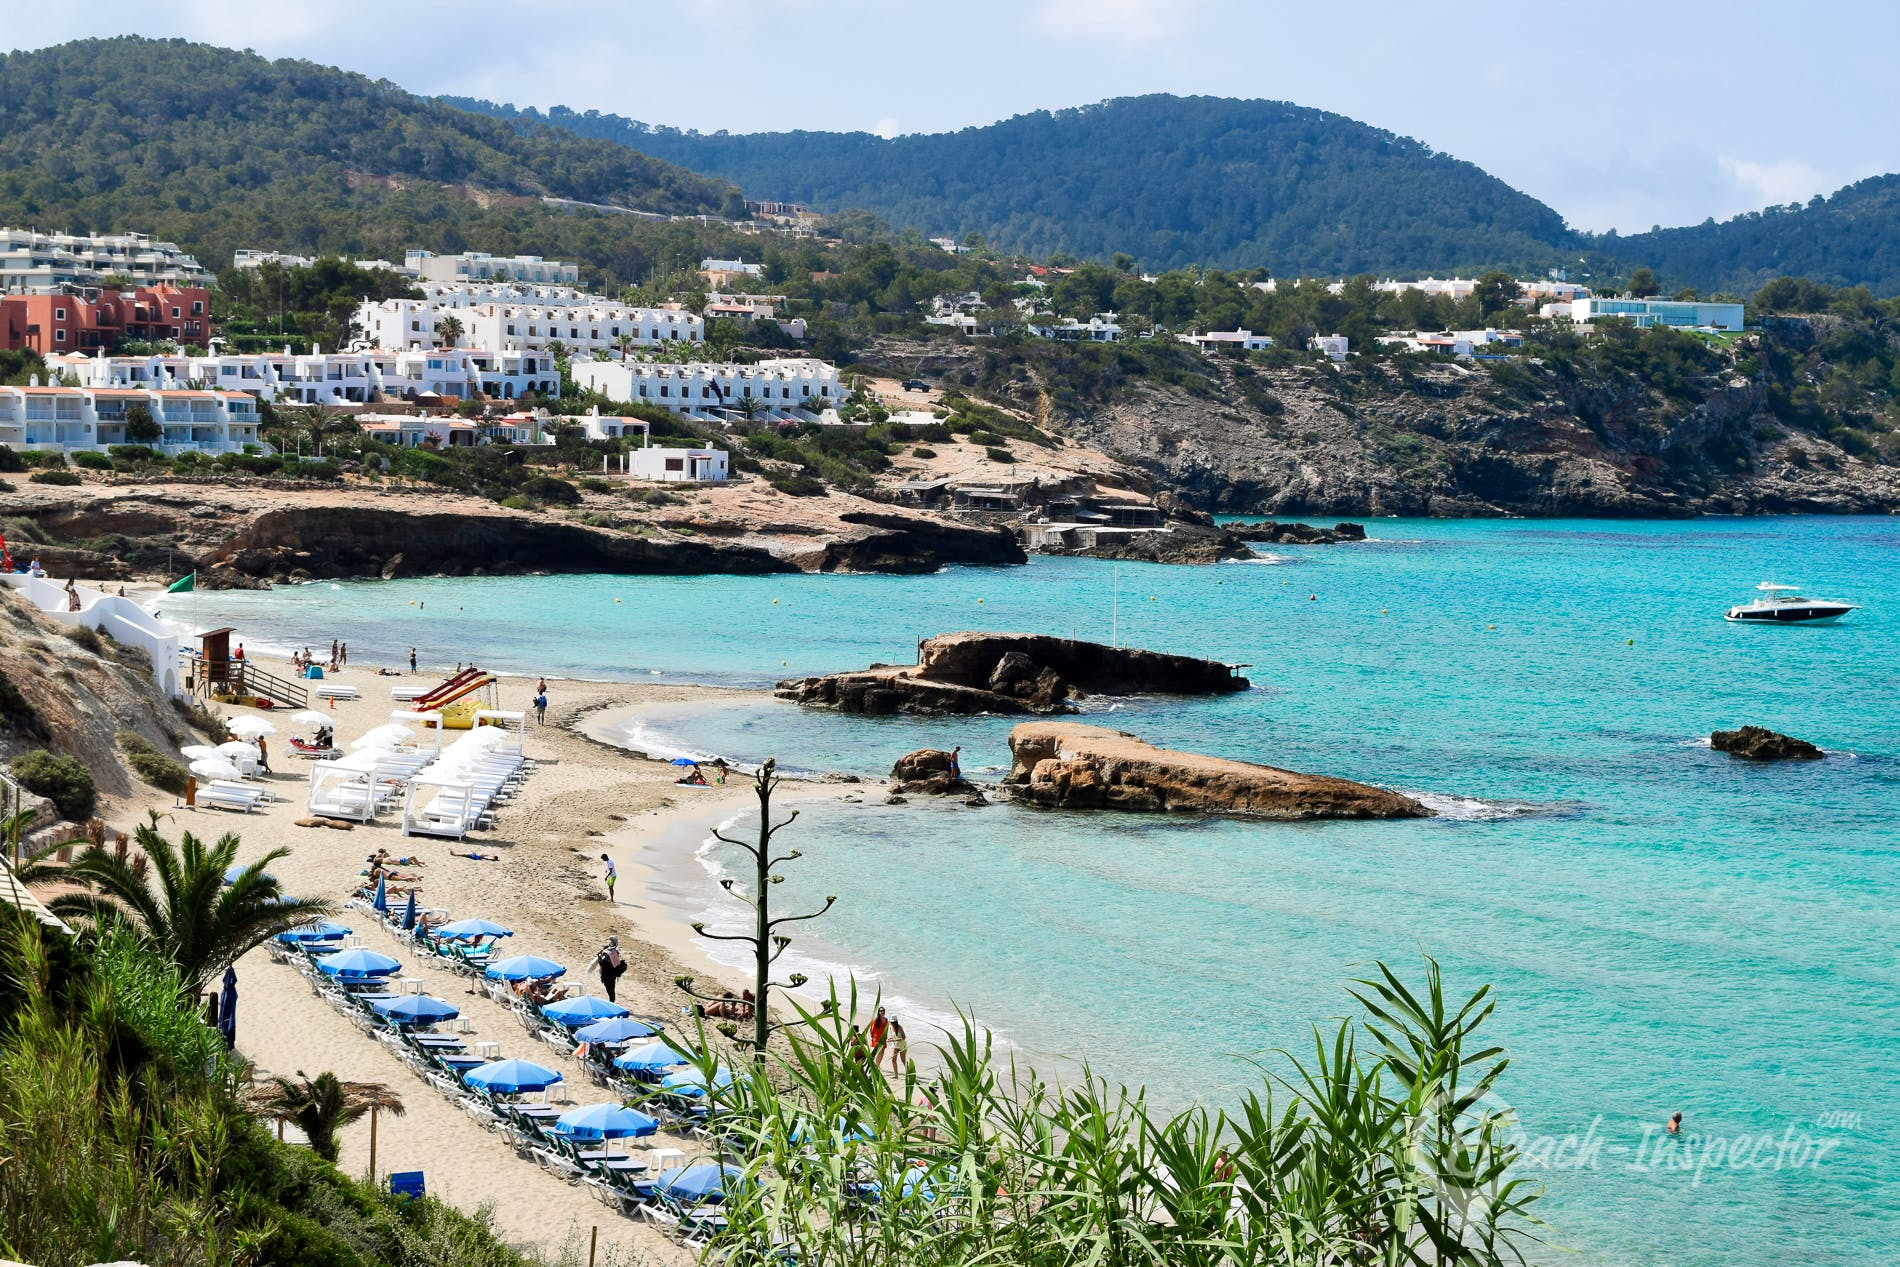 Beach Cala Tarida, Ibiza, Spain